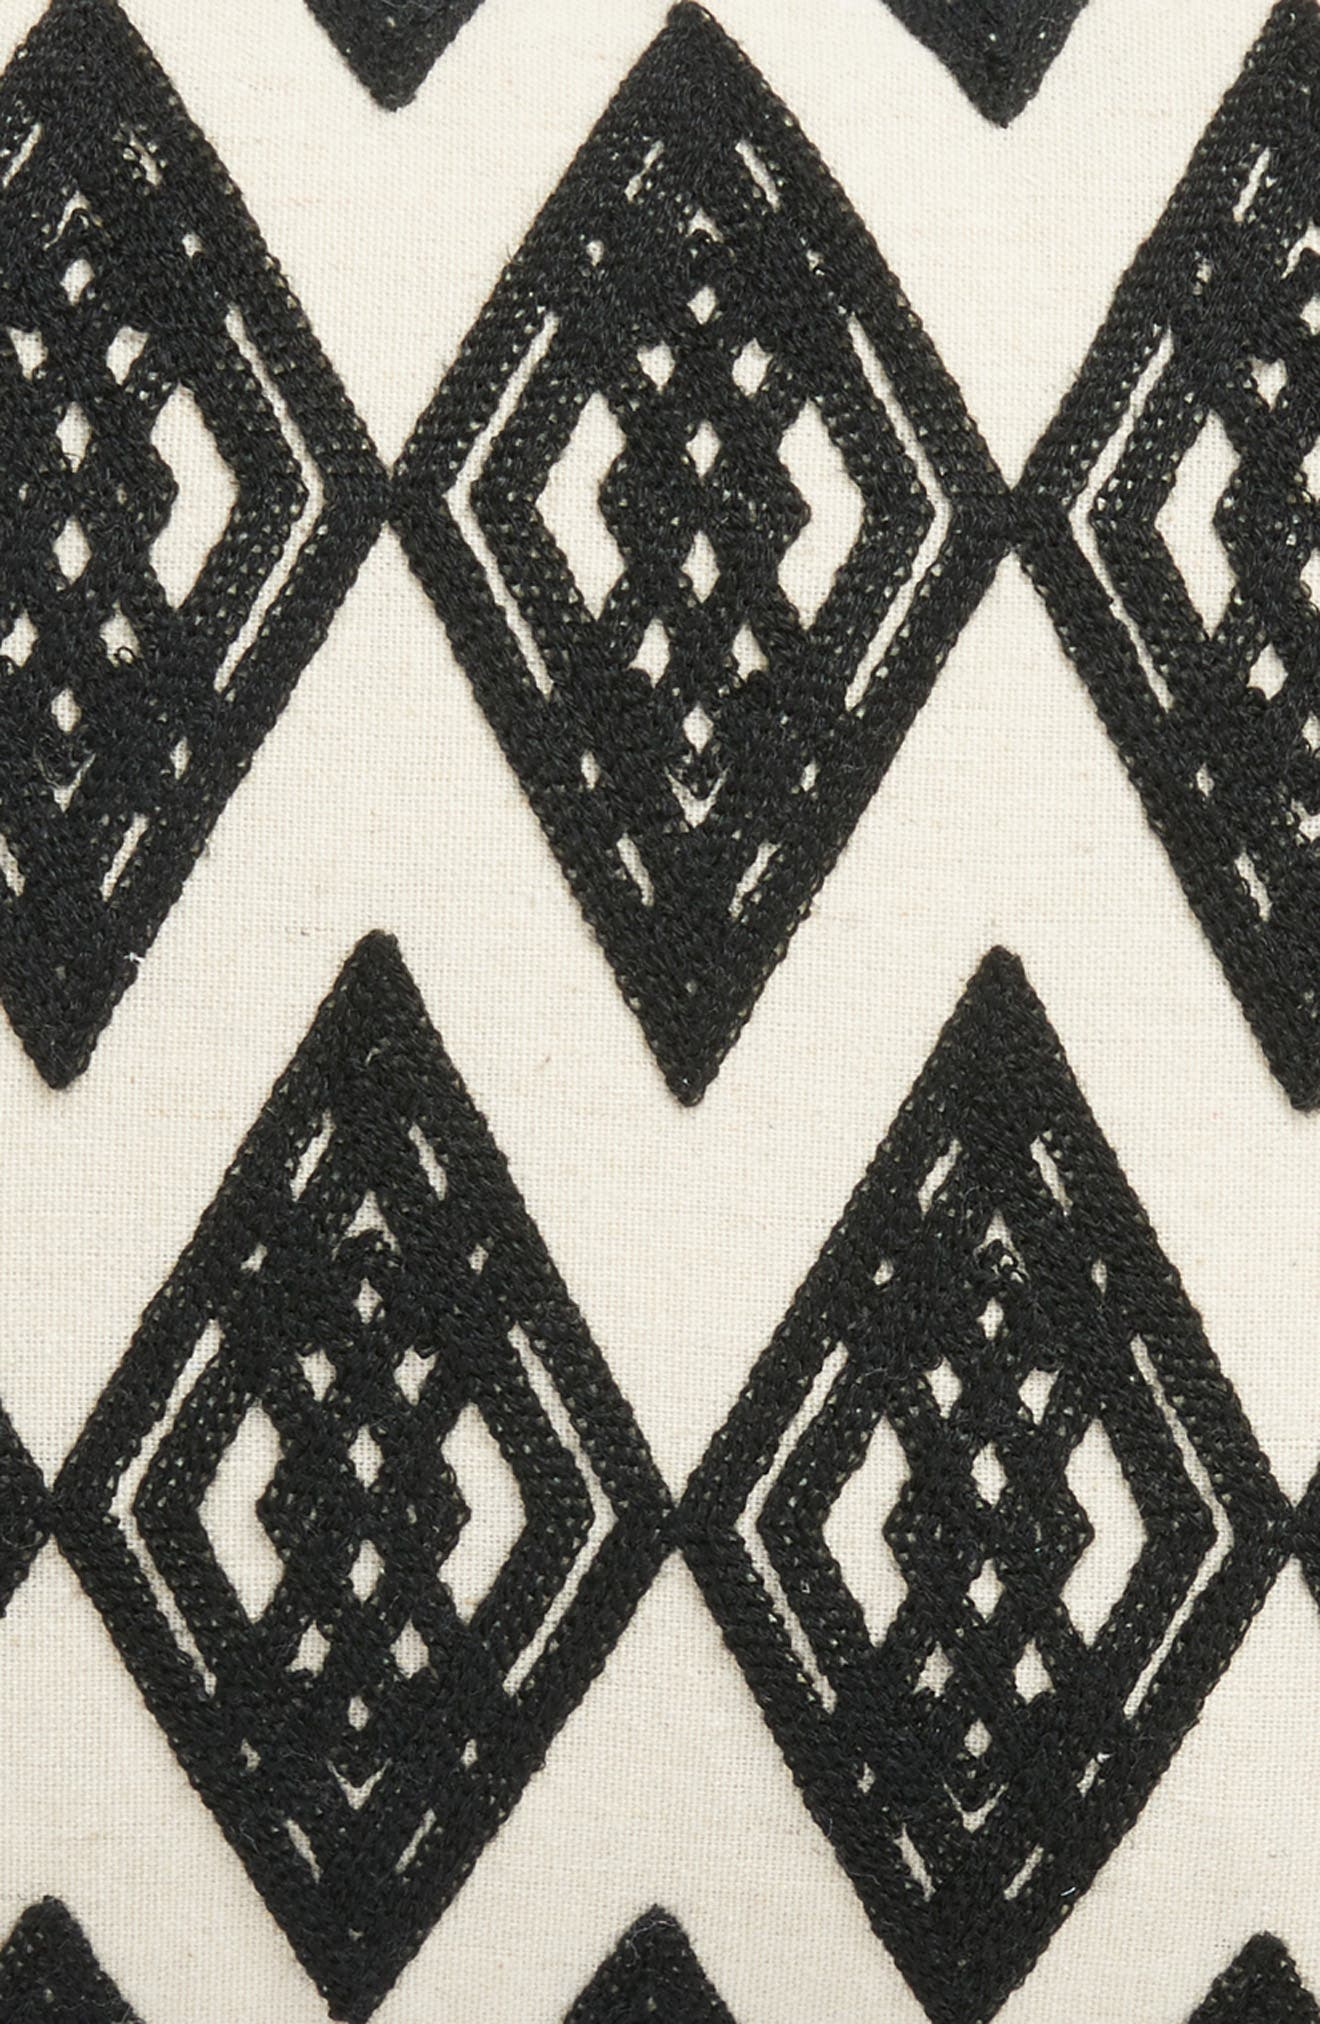 Moroccan Crewel Embroidered Pillow,                             Alternate thumbnail 3, color,                             010